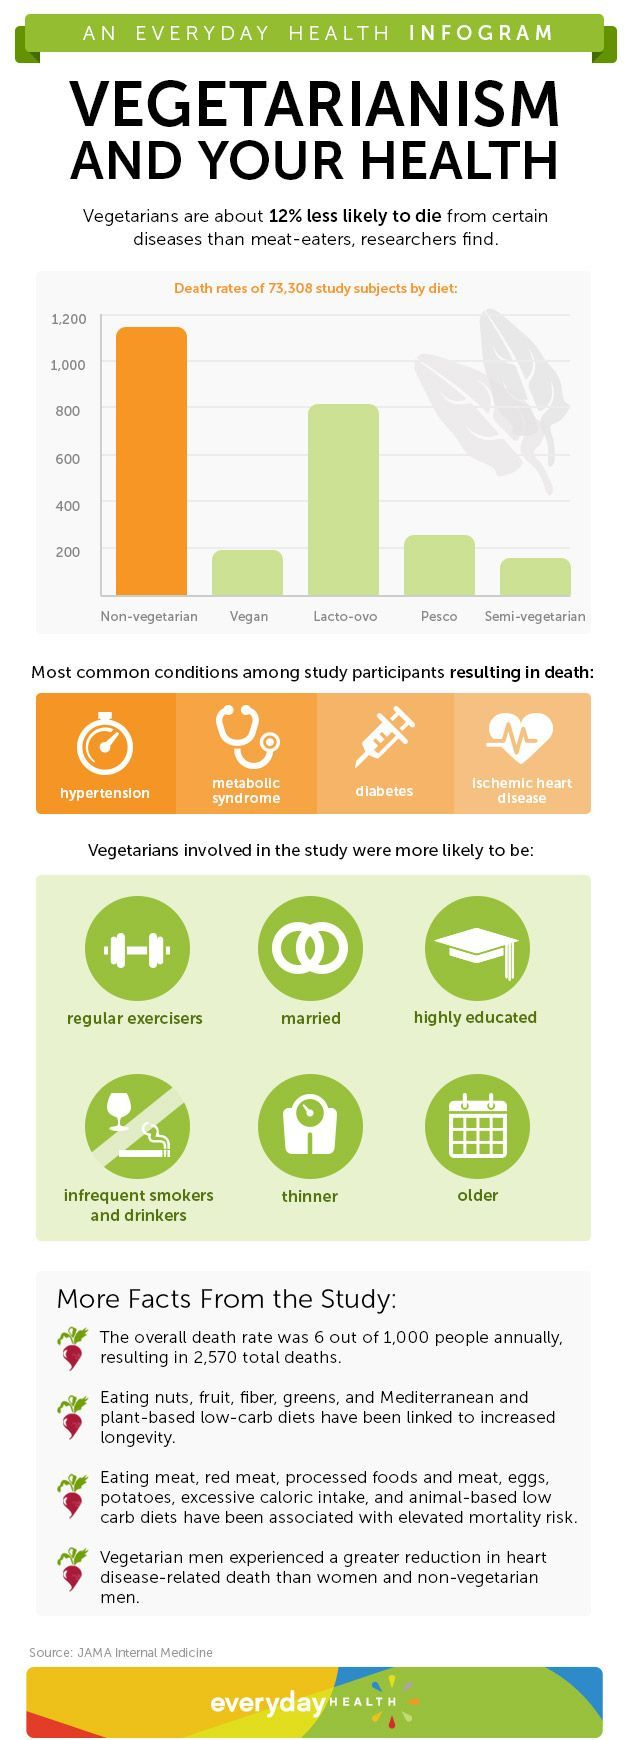 are about 12% less likely to die from certain diseases than meat-eaters, researchers find. Check out this infographic to find out why the vegetarian diet is tied to lower death rates. Does this surprise you?Vegetarians are about 12% less likely to die from certain diseases than meat-eaters, researchers find. Check out this infographic to f...